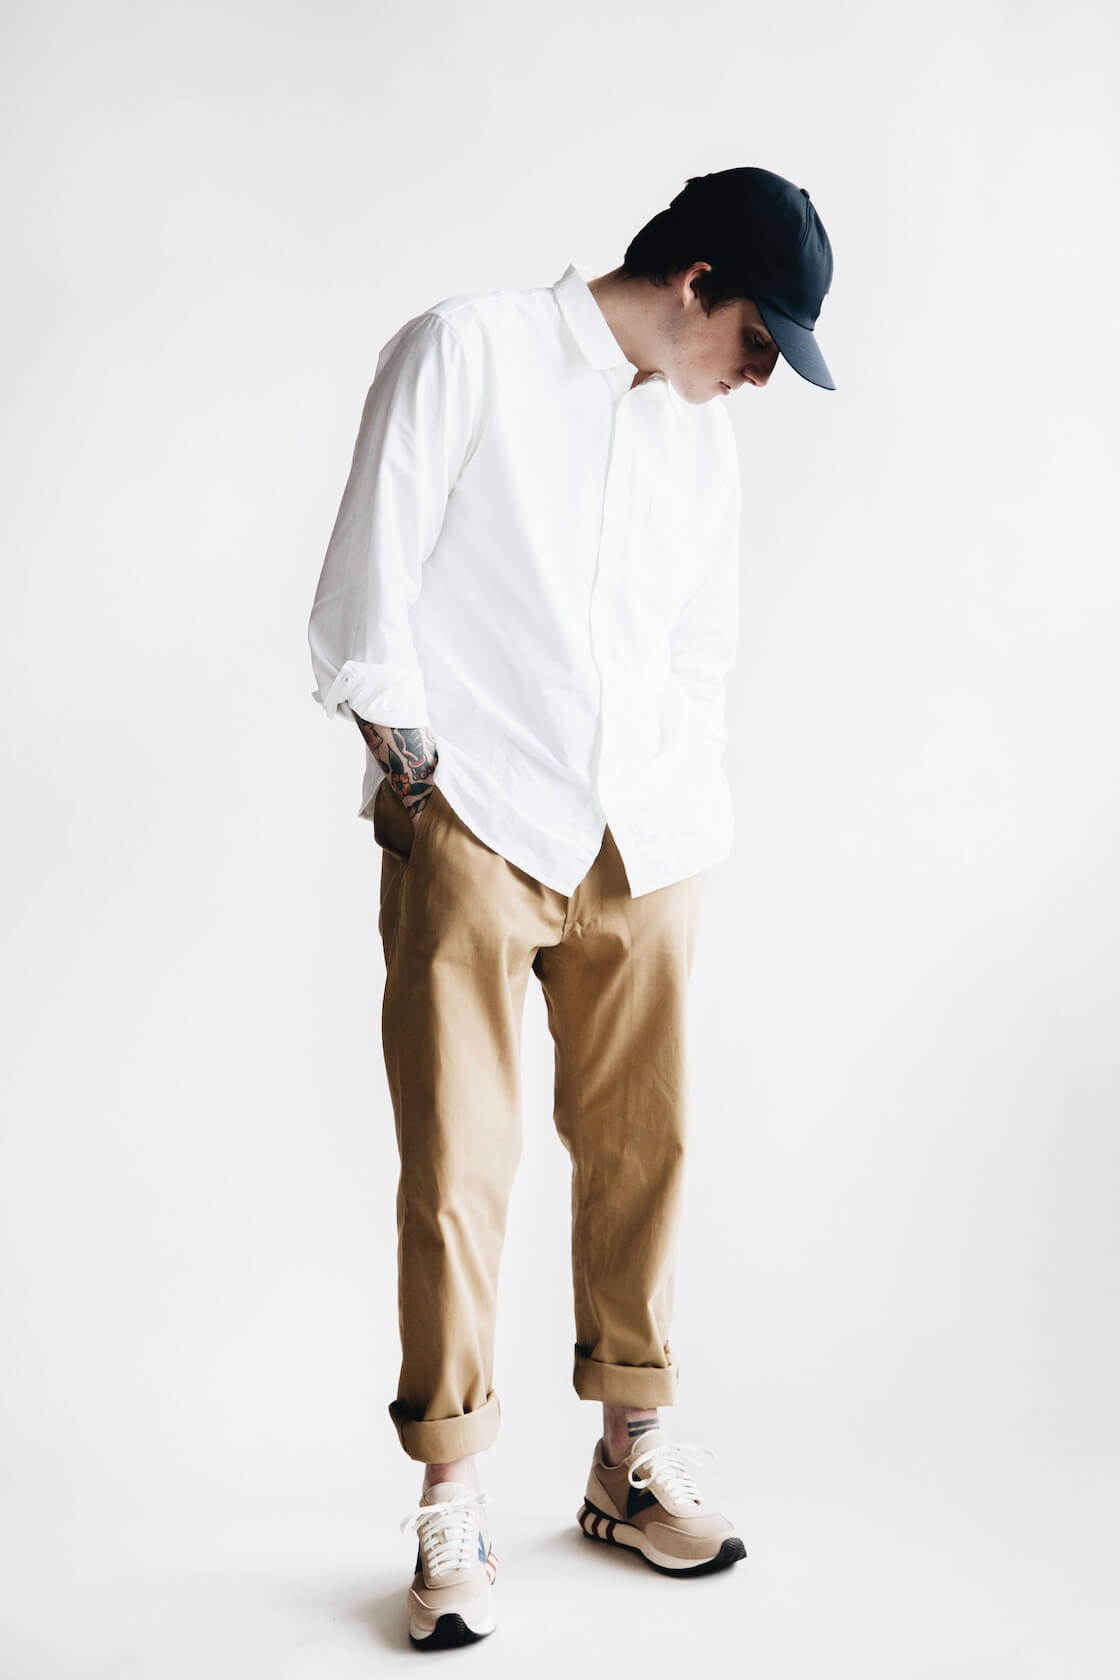 canoe club x corridor white oxford shirt, nanamica chino cap, orslow army trousers and visvim attica trainers on body